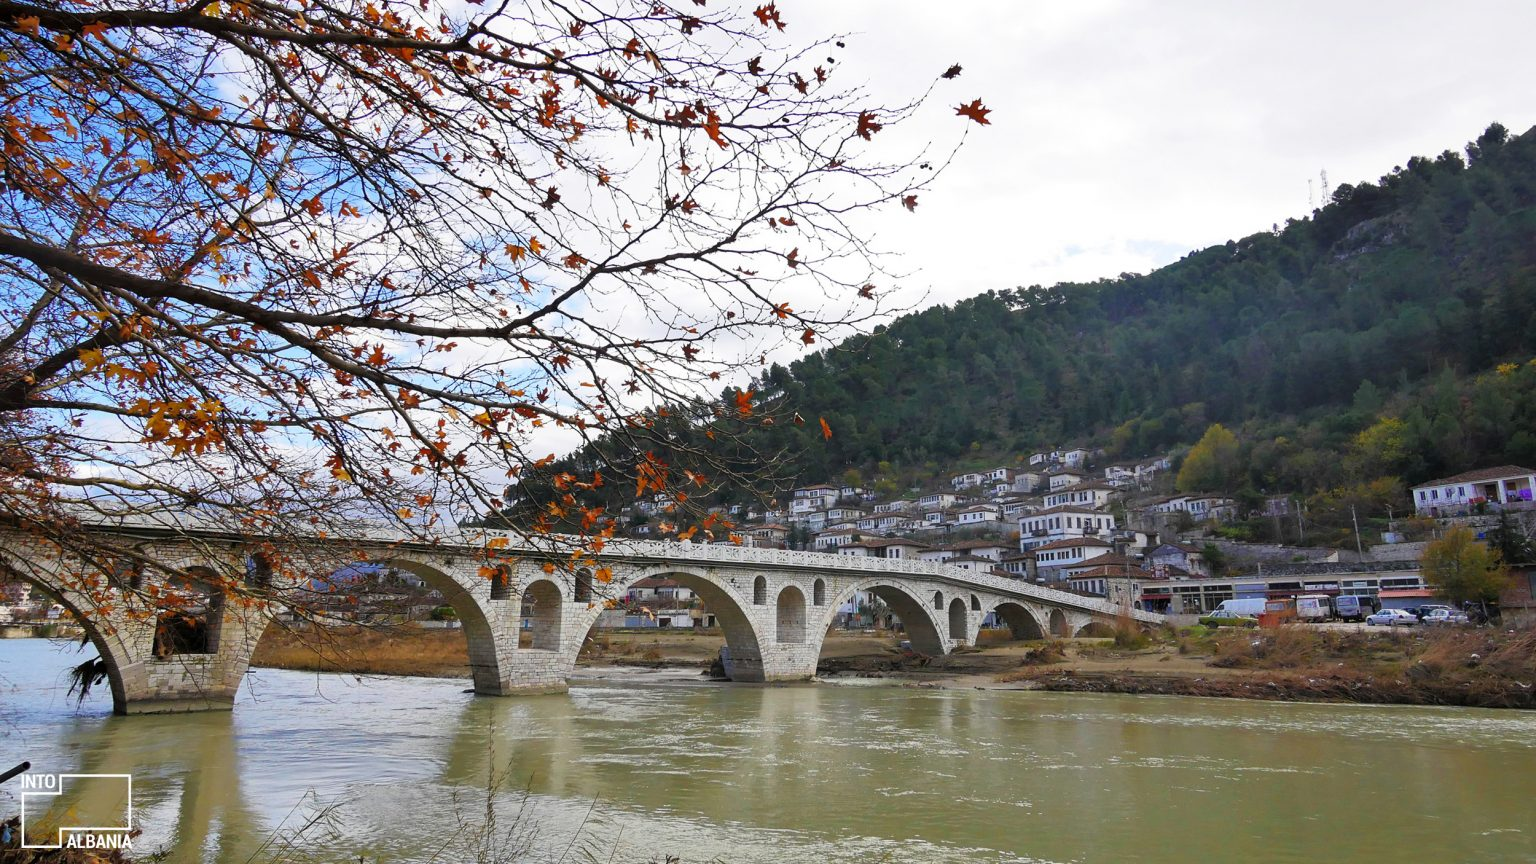 Bridge of Gorica, Berat, photo by IntoAlbania